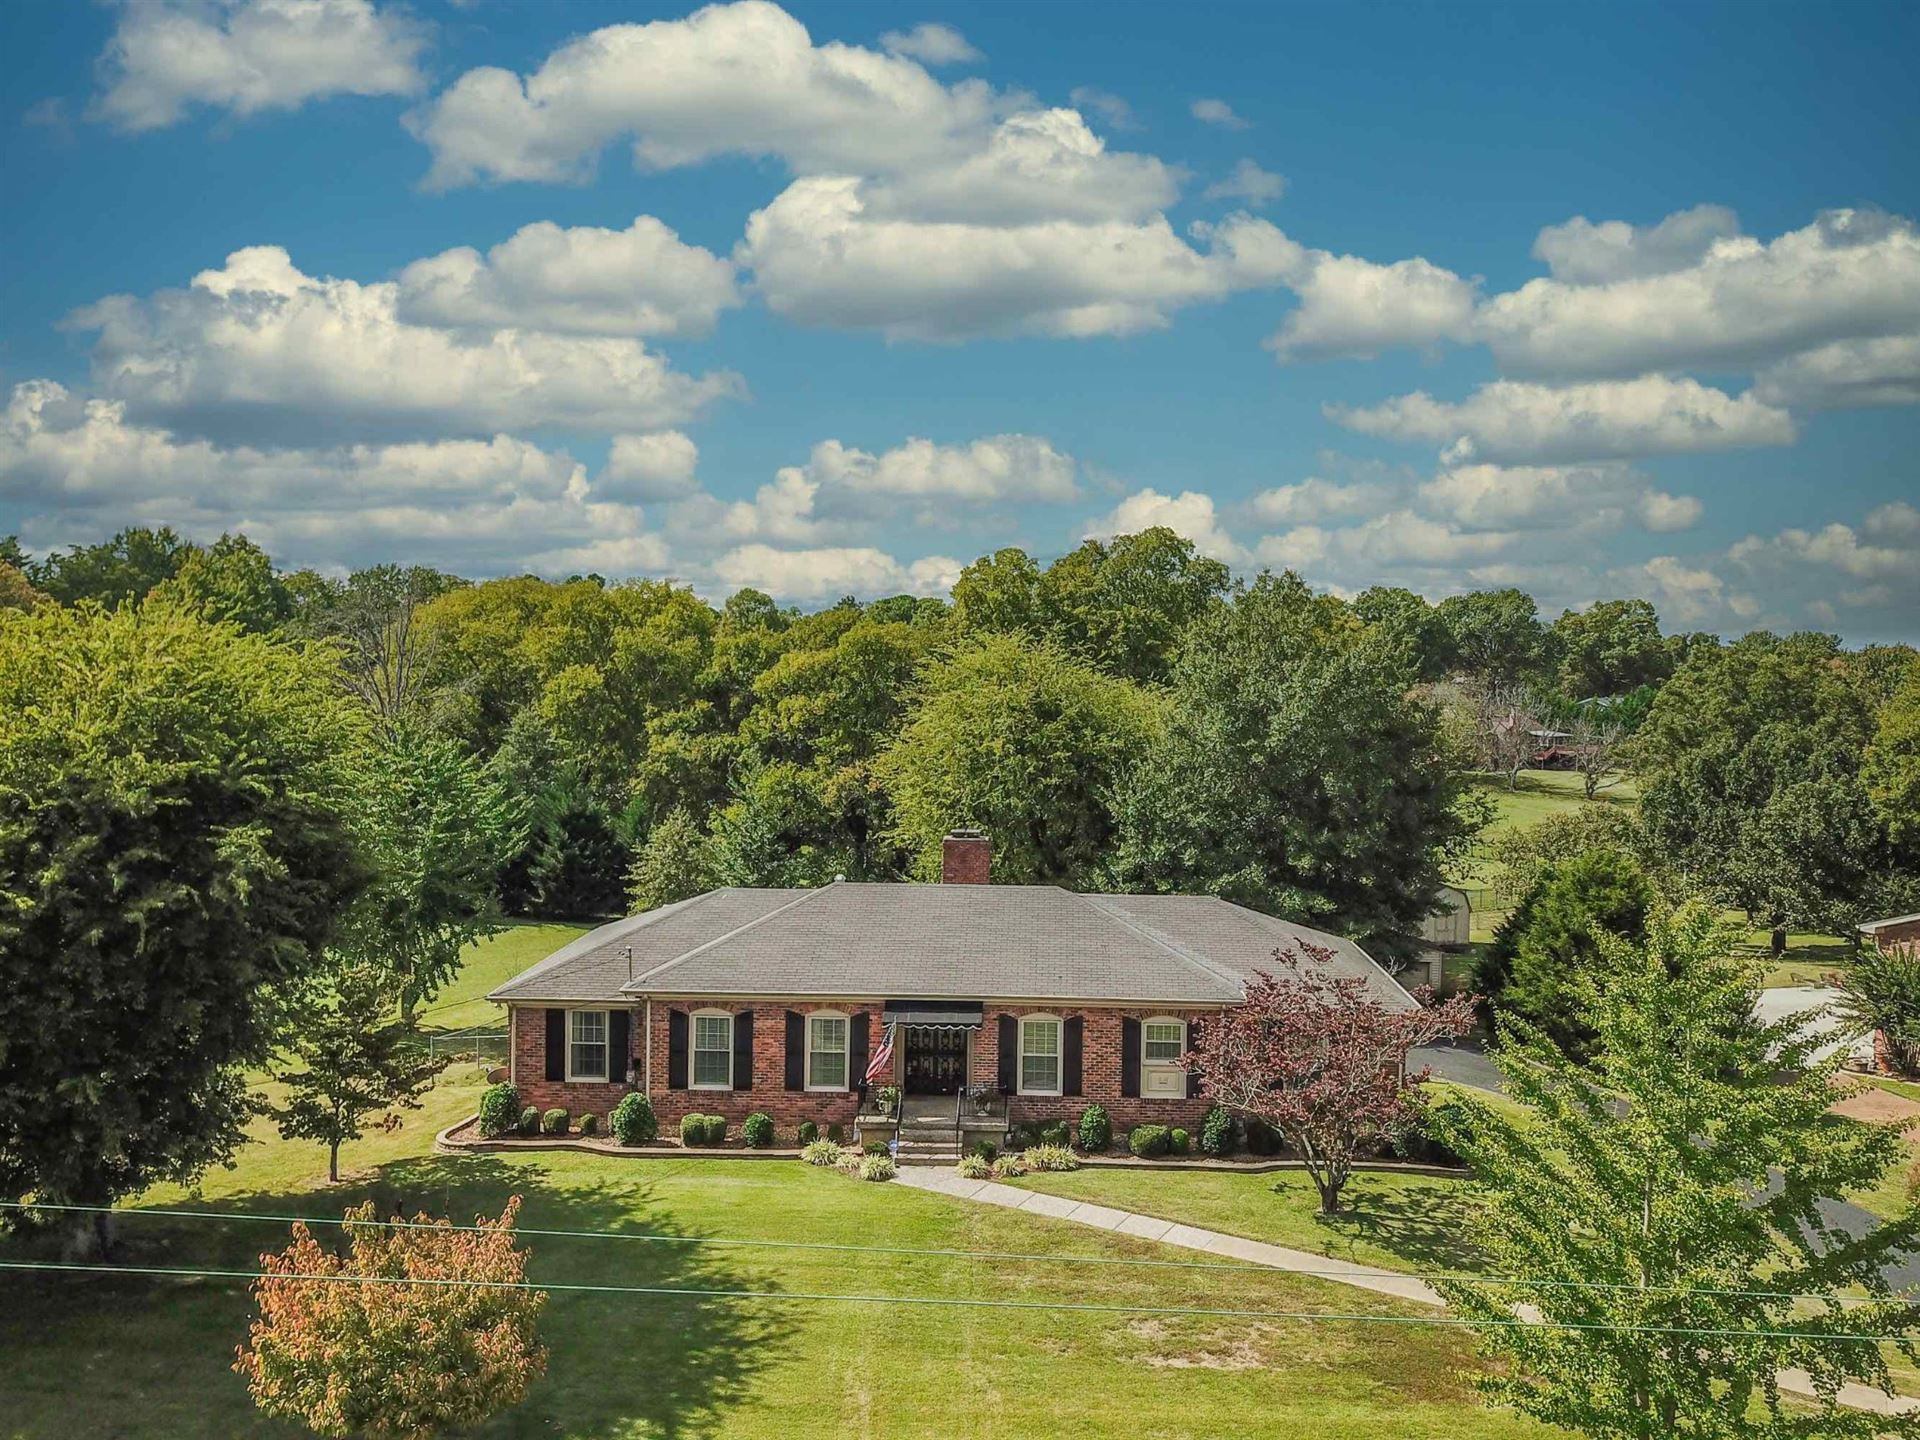 308 Rolling Mill Rd, Old Hickory, TN 37138 - MLS#: 2185313